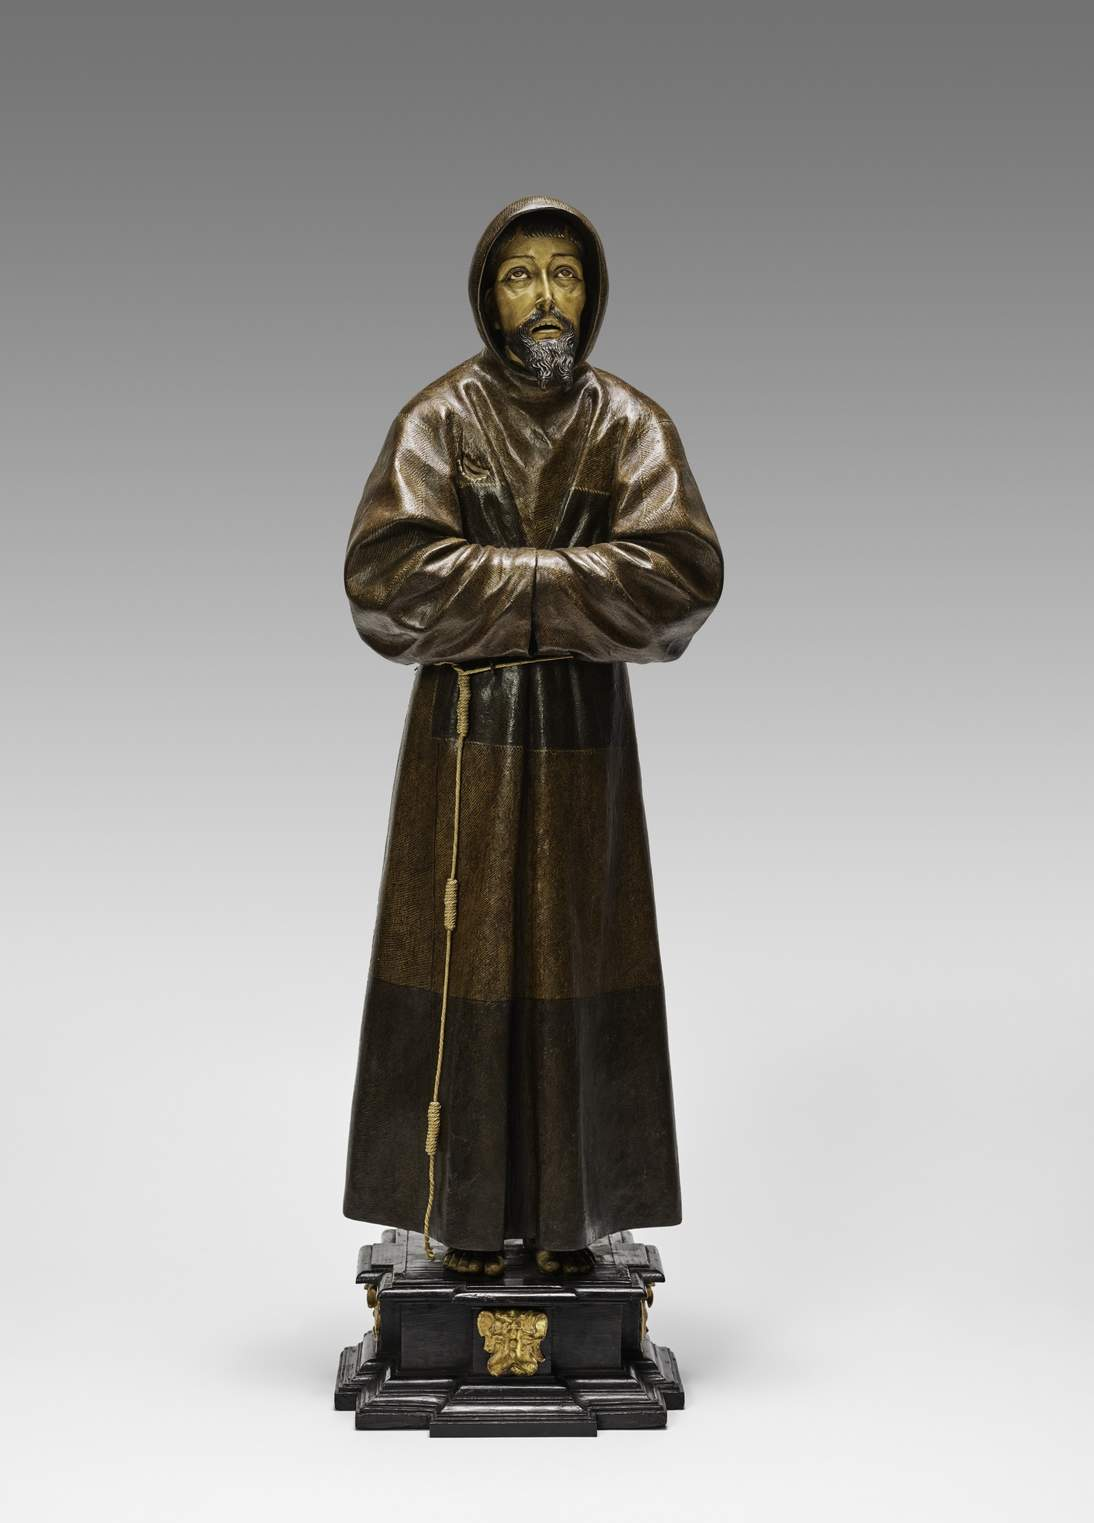 """Bernardo del Rincón, """"Saint Francis,"""" ca. 1650. Polychrome wood, glass, and rope, height 43 ½ in. (110.5 cm). Fine Arts Museums of San Francisco, Museum purchase, Gift of Bank of America, by exchange, 2018.20"""